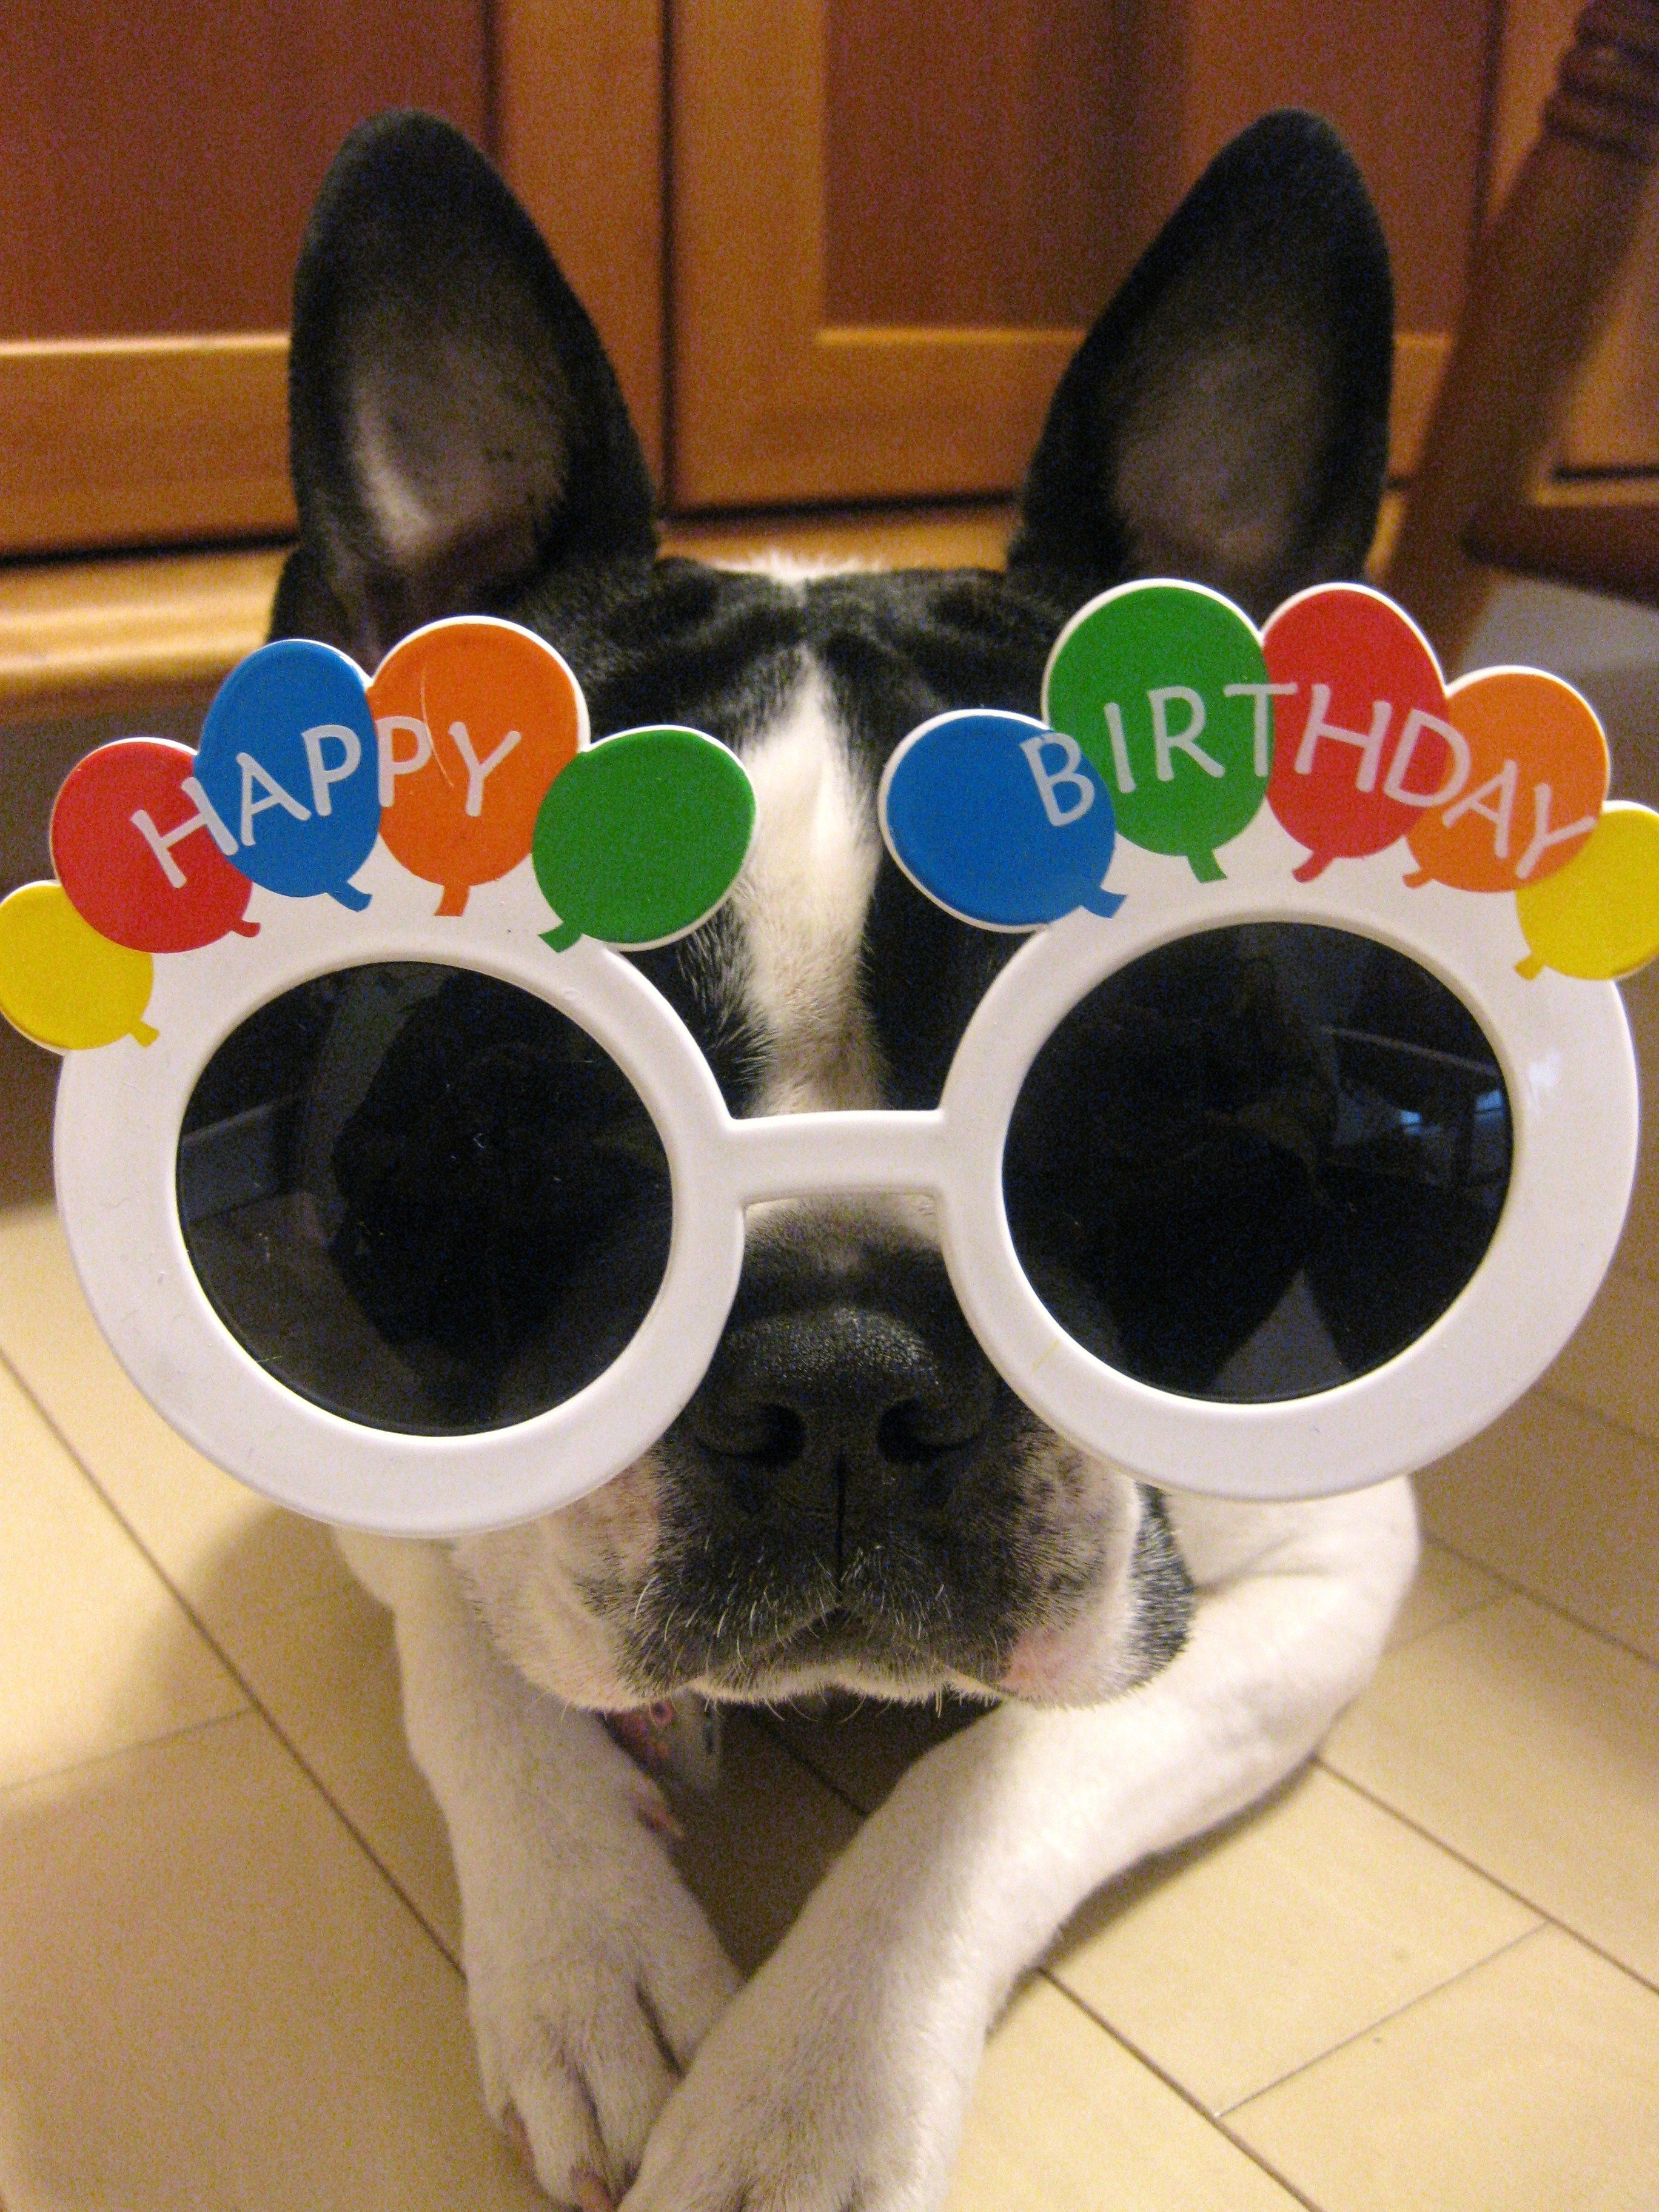 Happy Birthday Celebrate in style just like this fun loving pooch